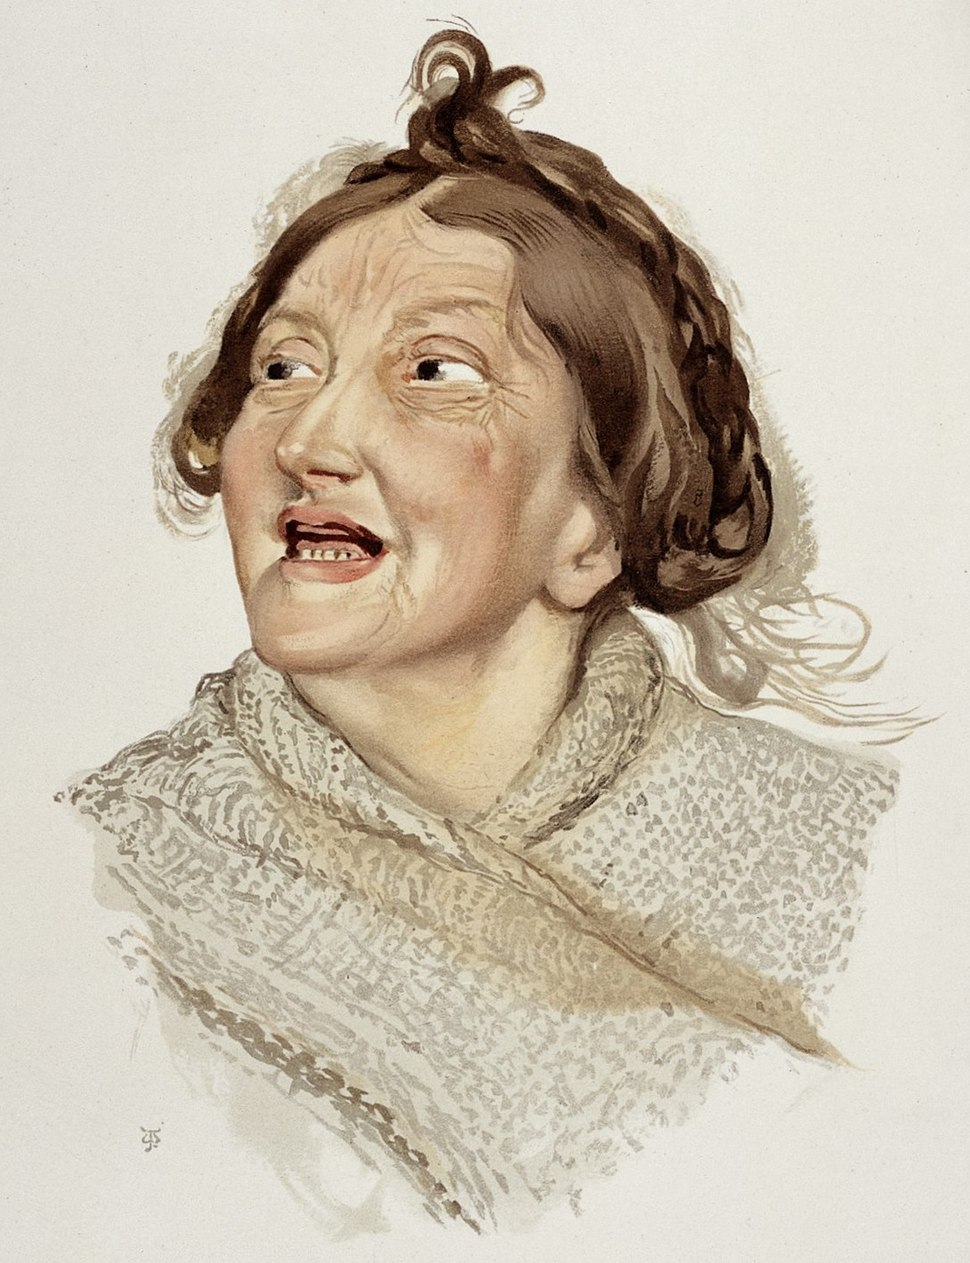 A woman diagnosed as suffering from hilarious mania. Colour Wellcome L0026687